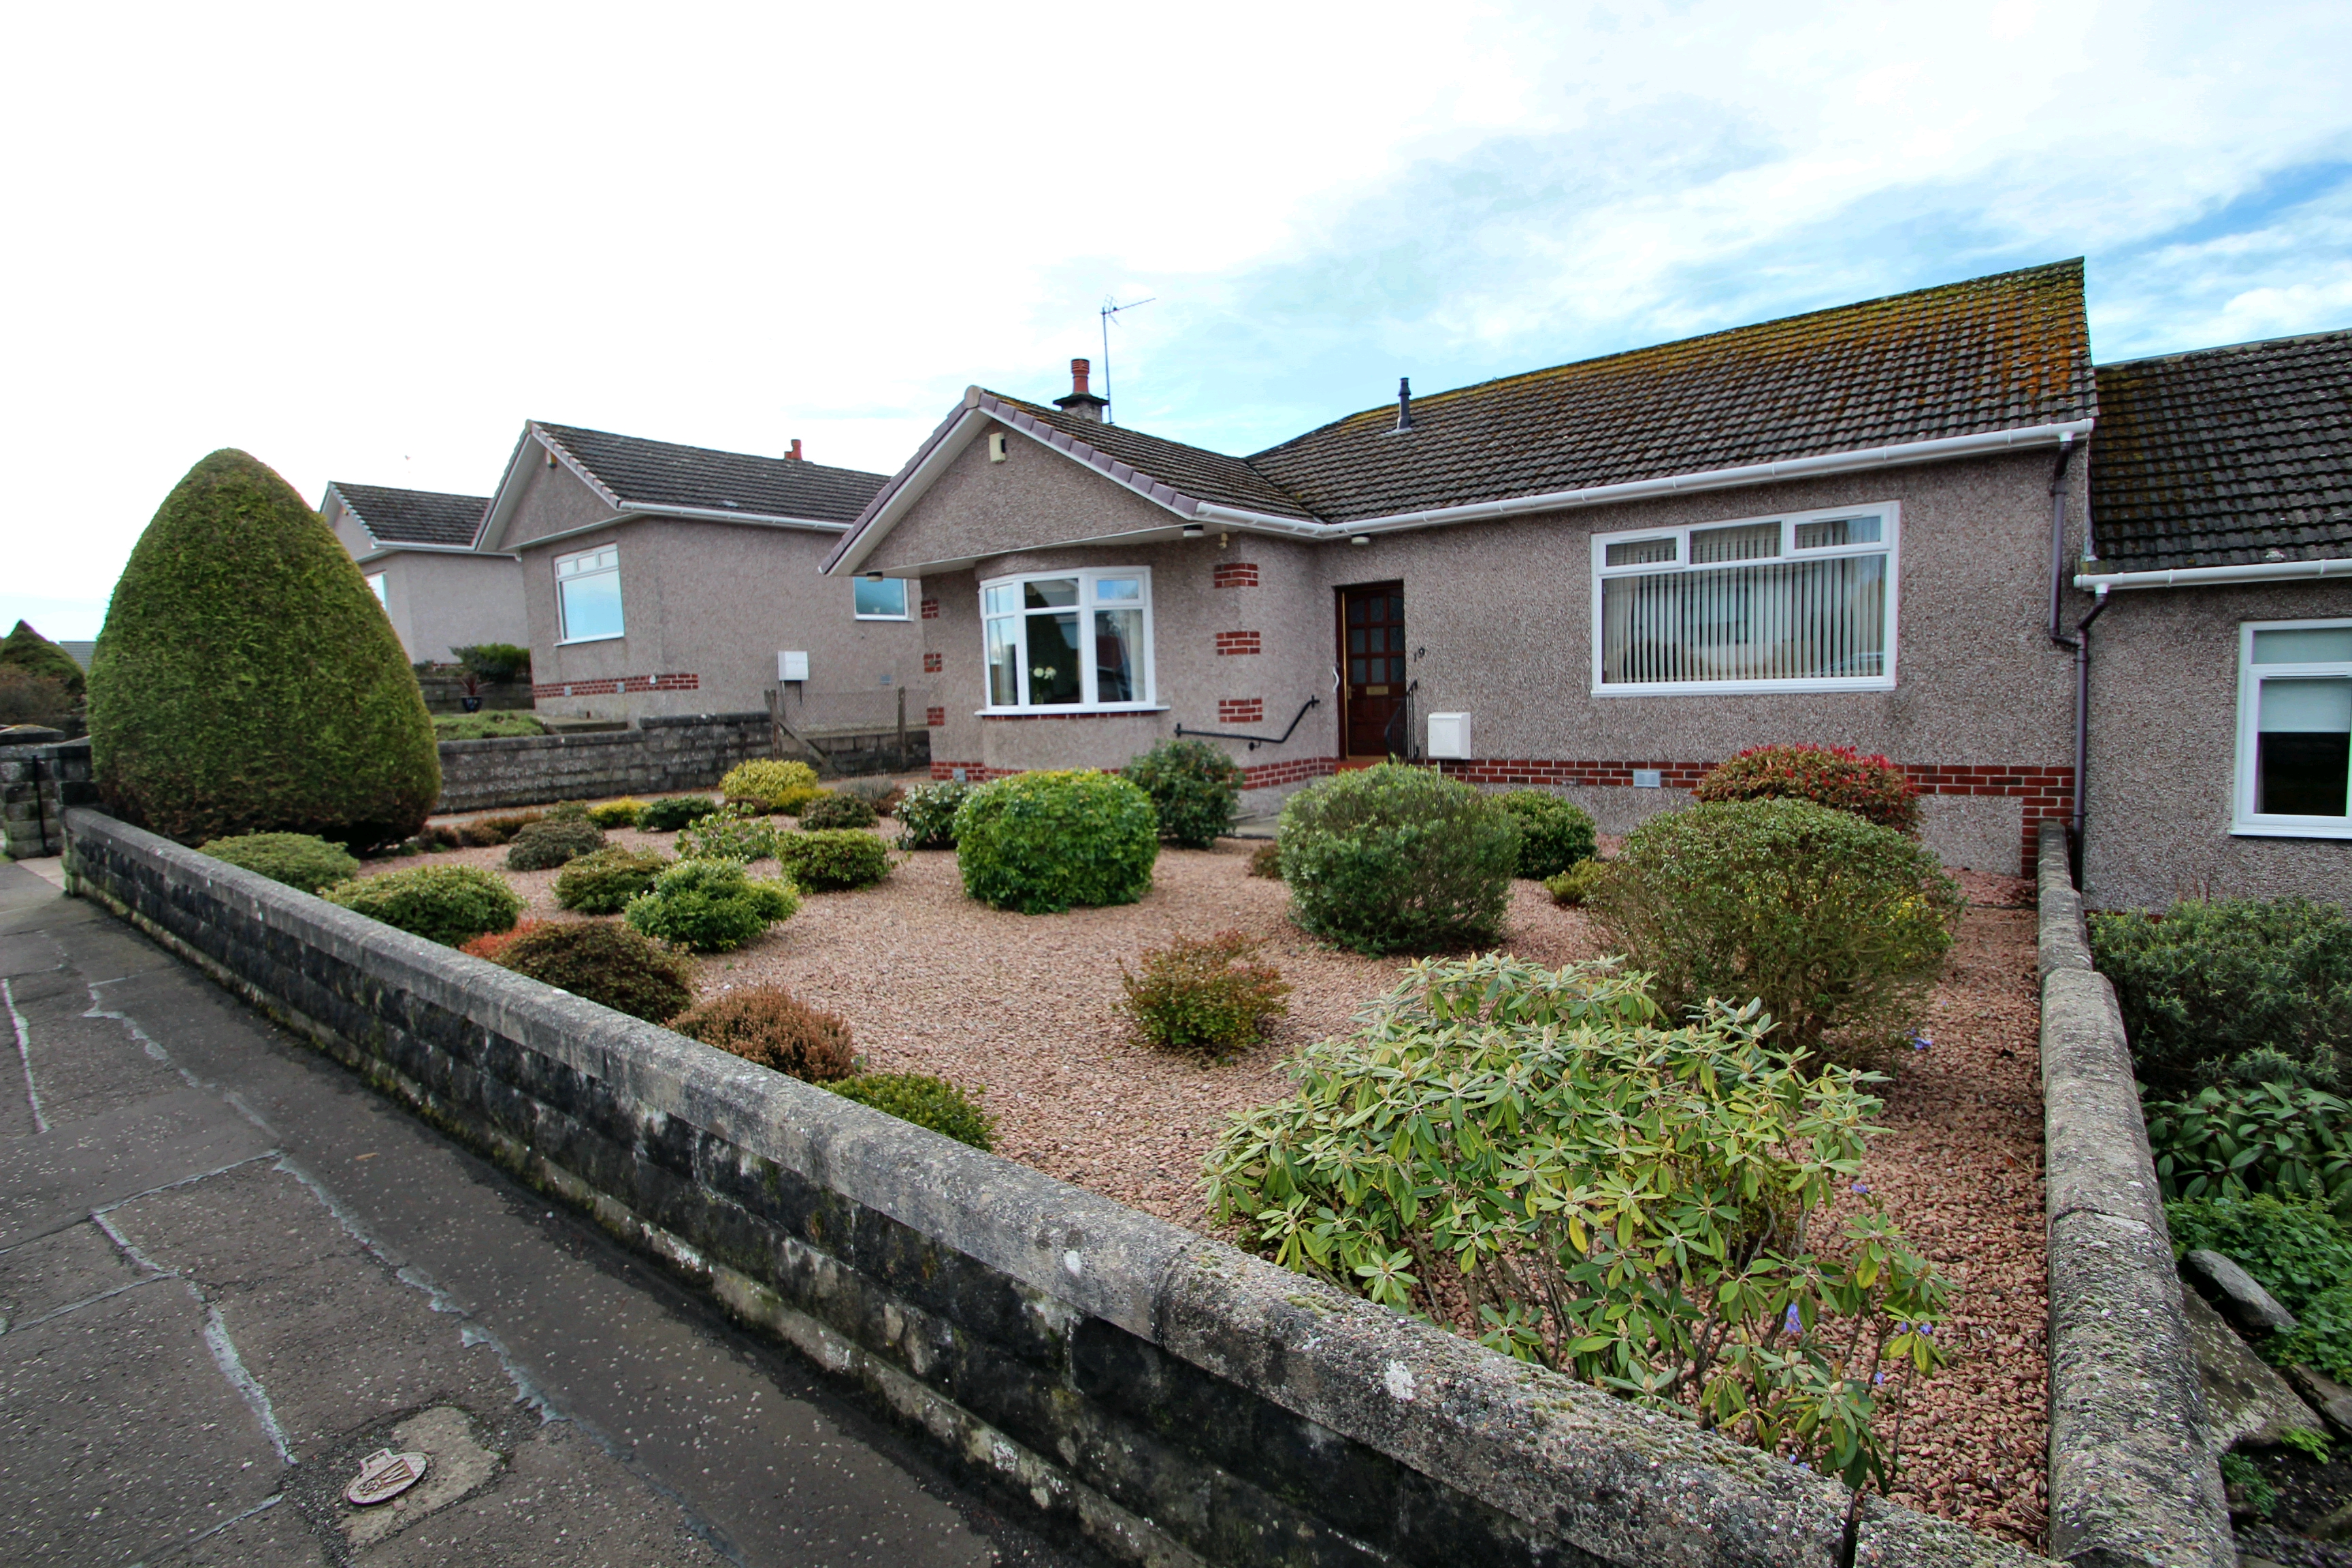 19 Ritchie Avenue, Monifieth, Angus, DD5 4DJ